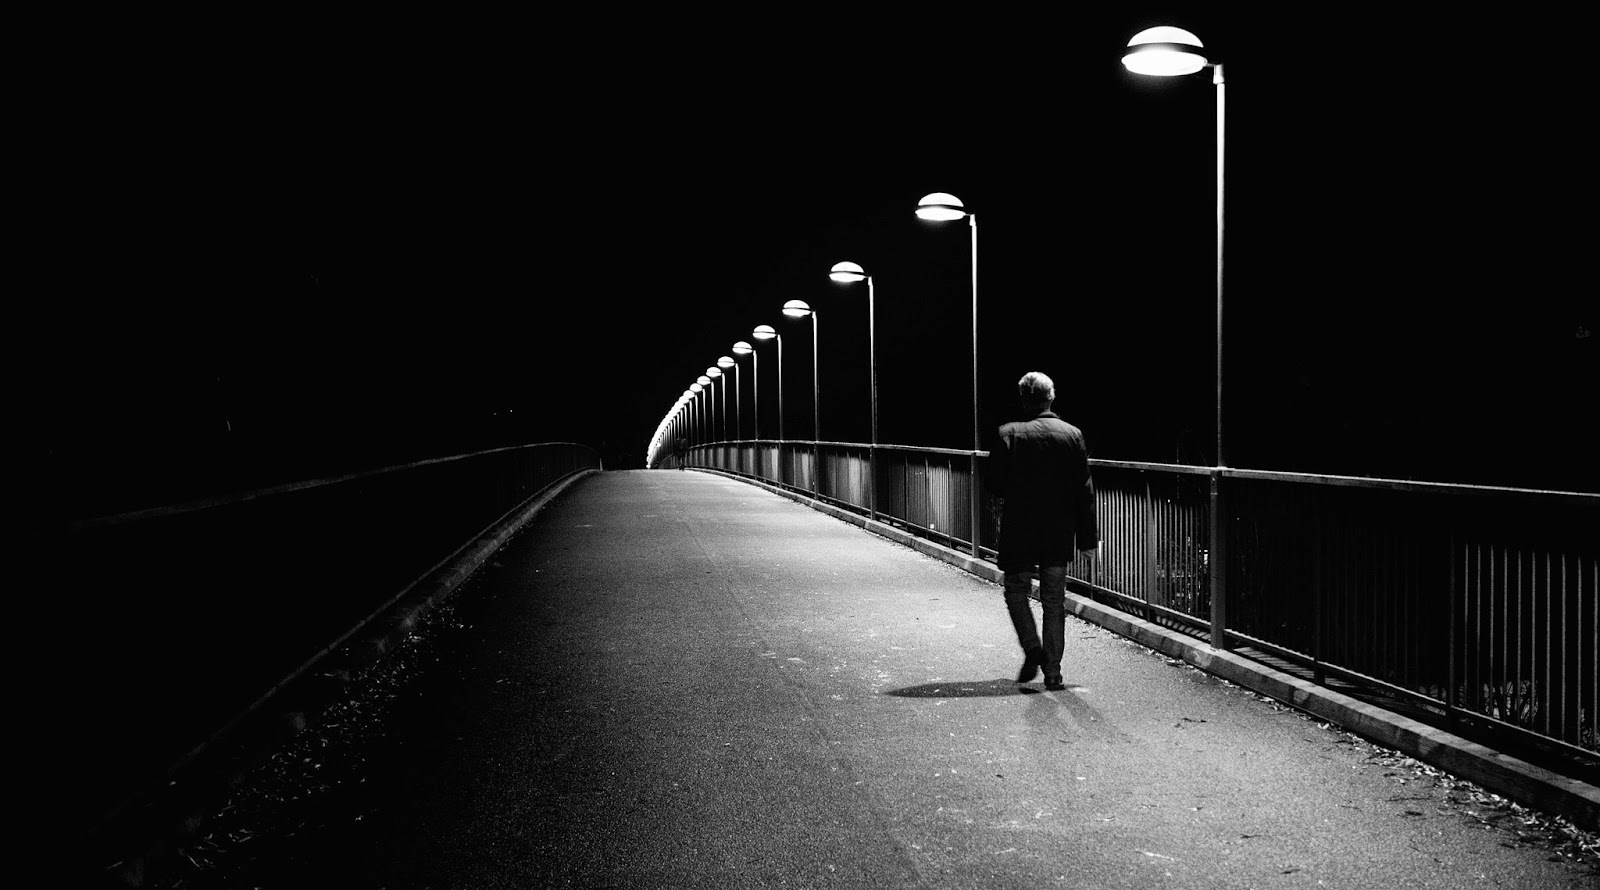 Alone Night Wallpapers